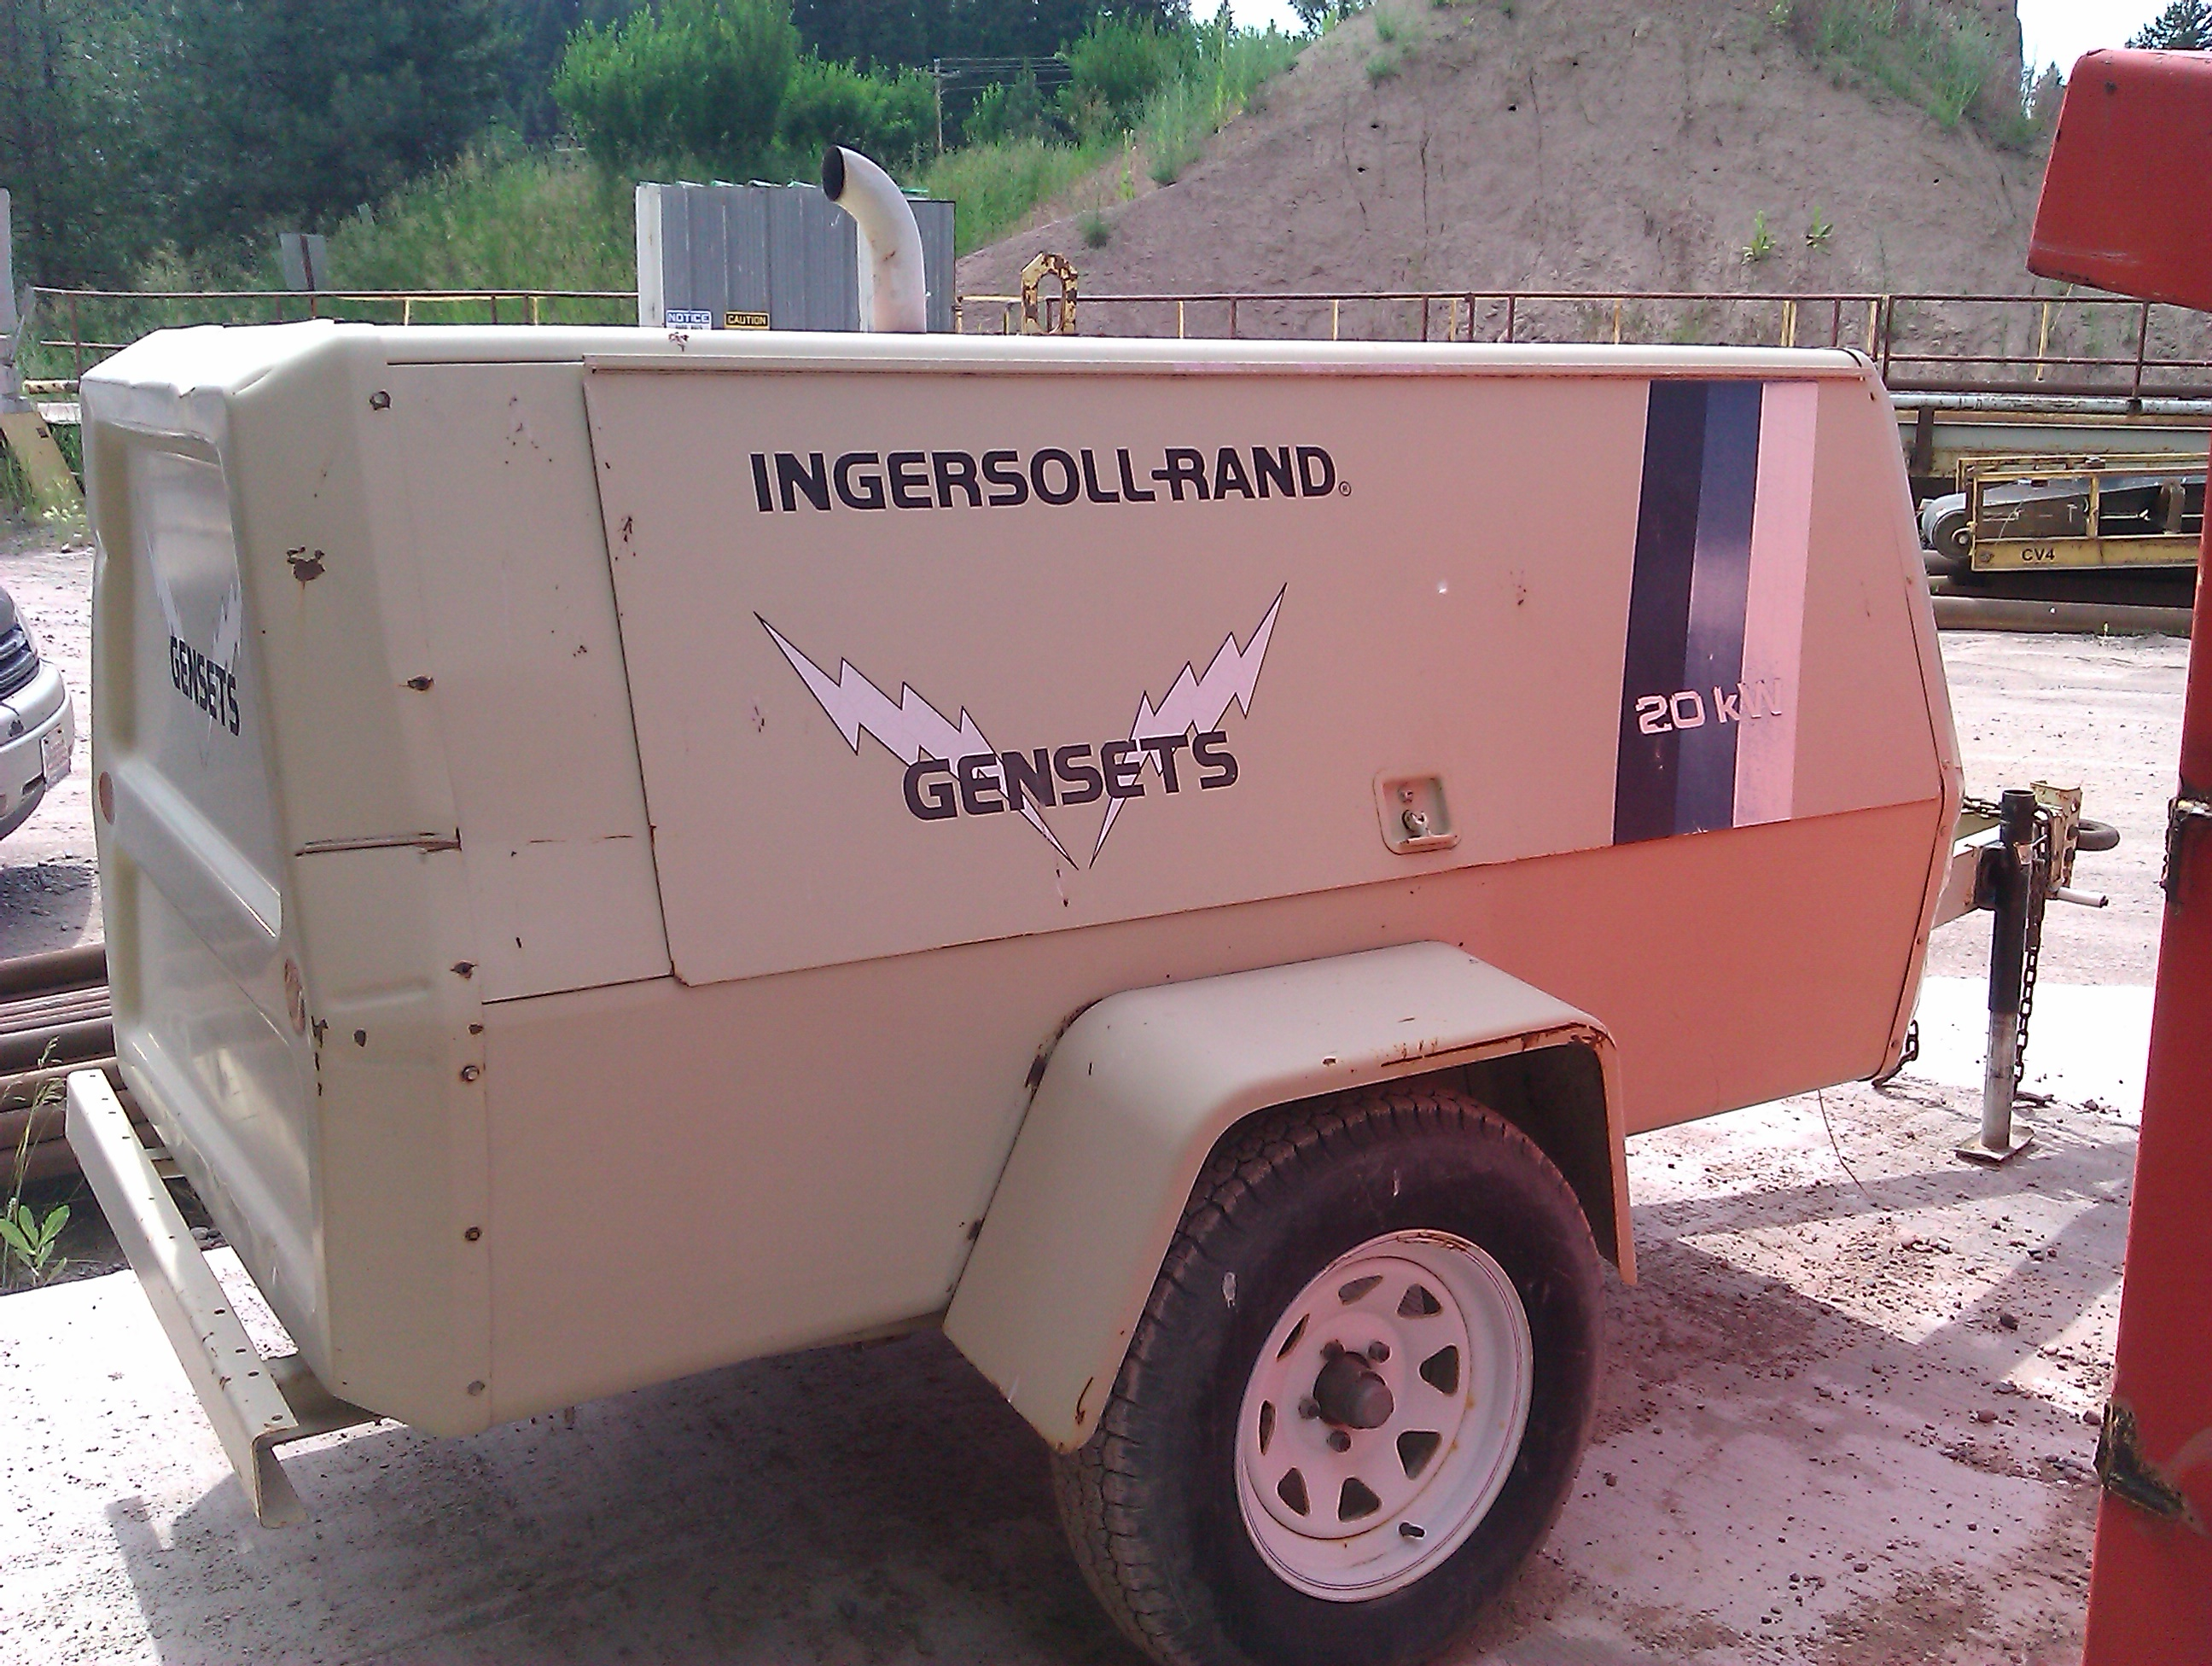 Ingersoll Rand 20 KW Generator Set For Sale